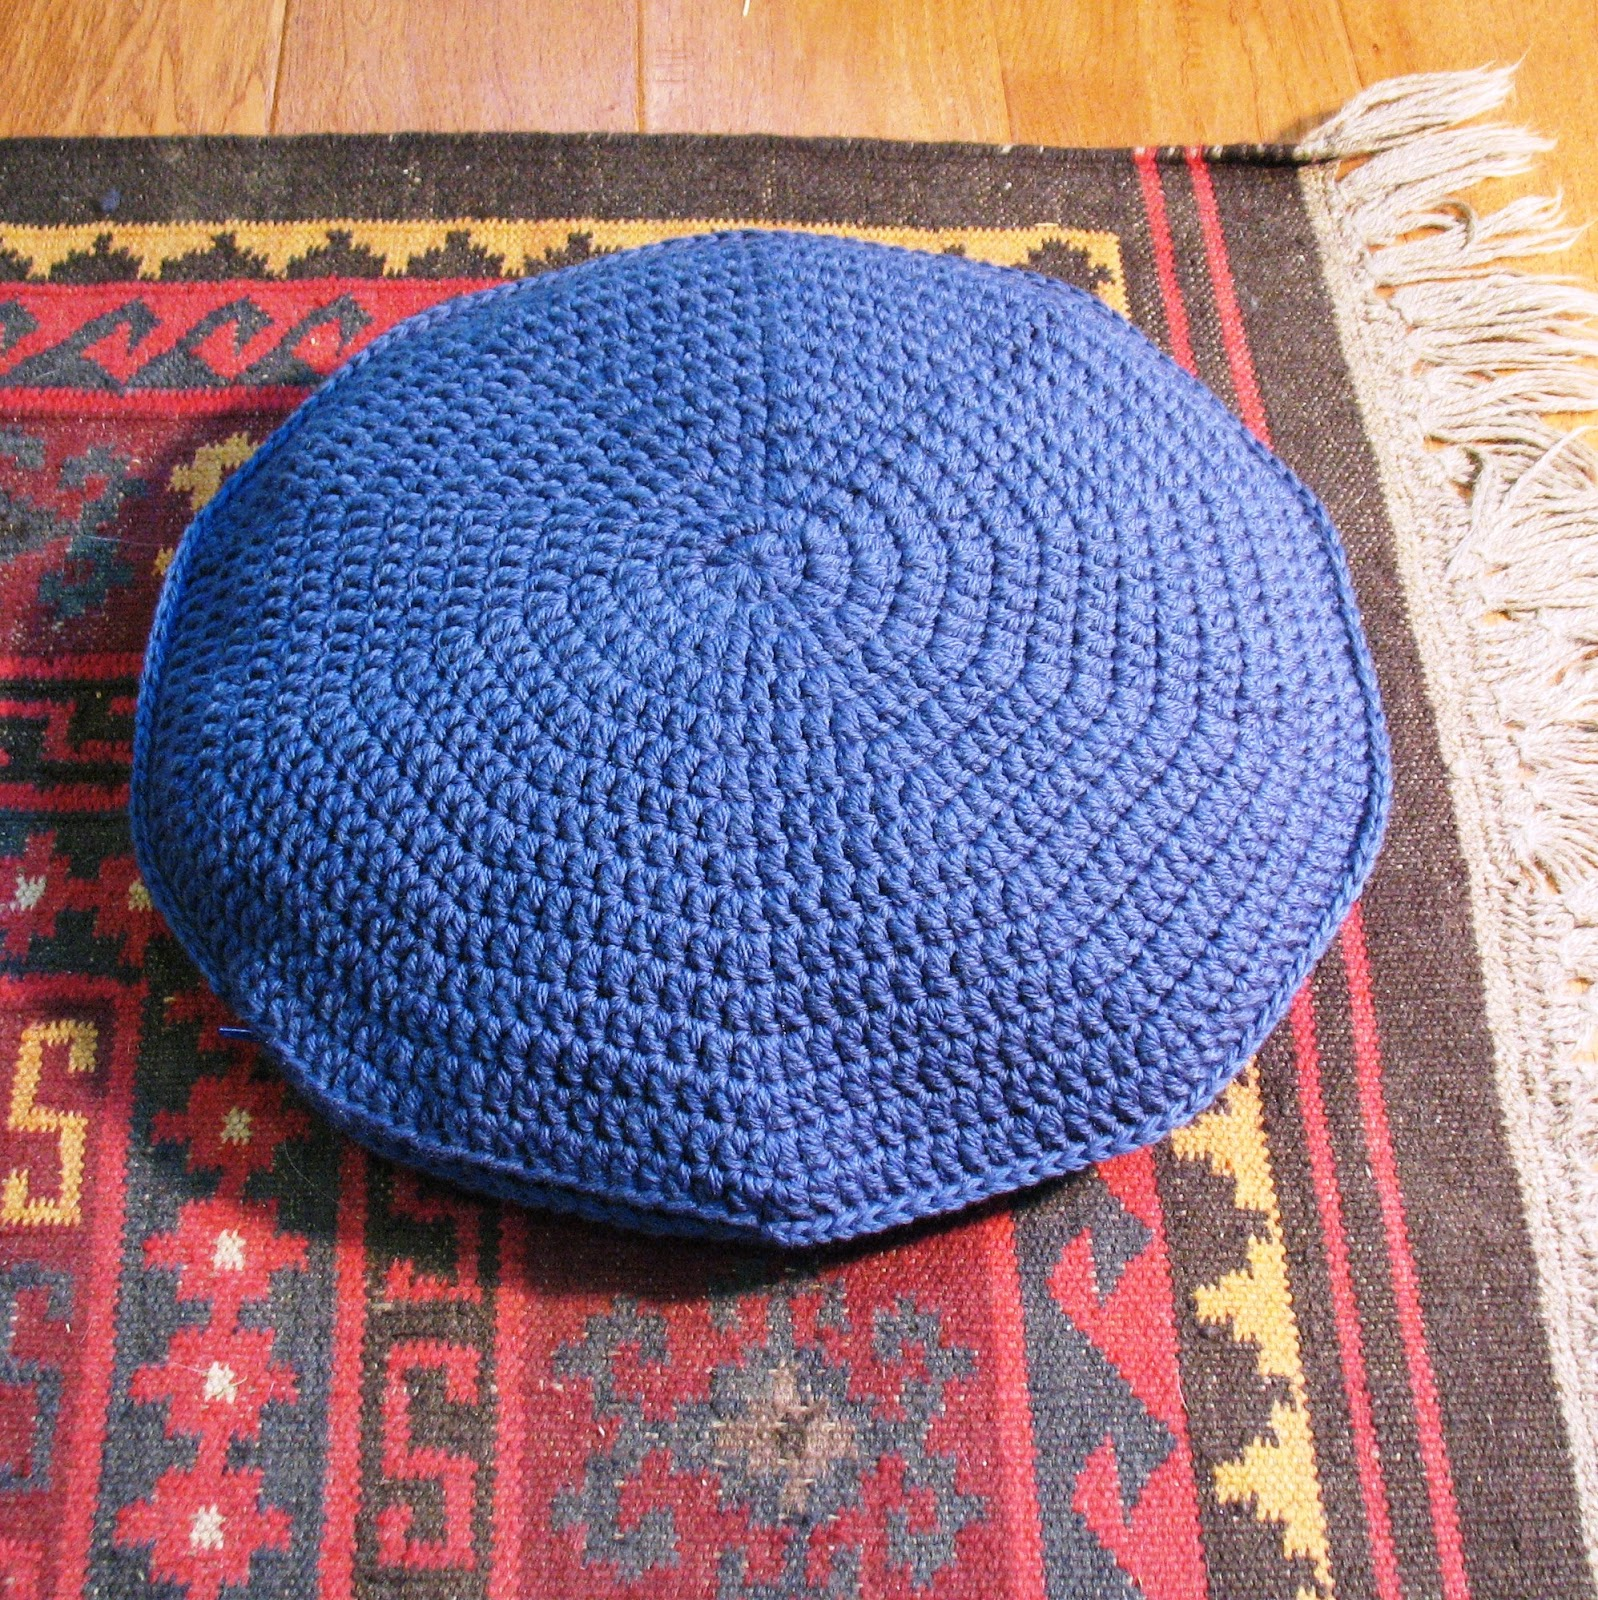 Ball Hank n Skein: The Big Easy Round Pillow Pattern